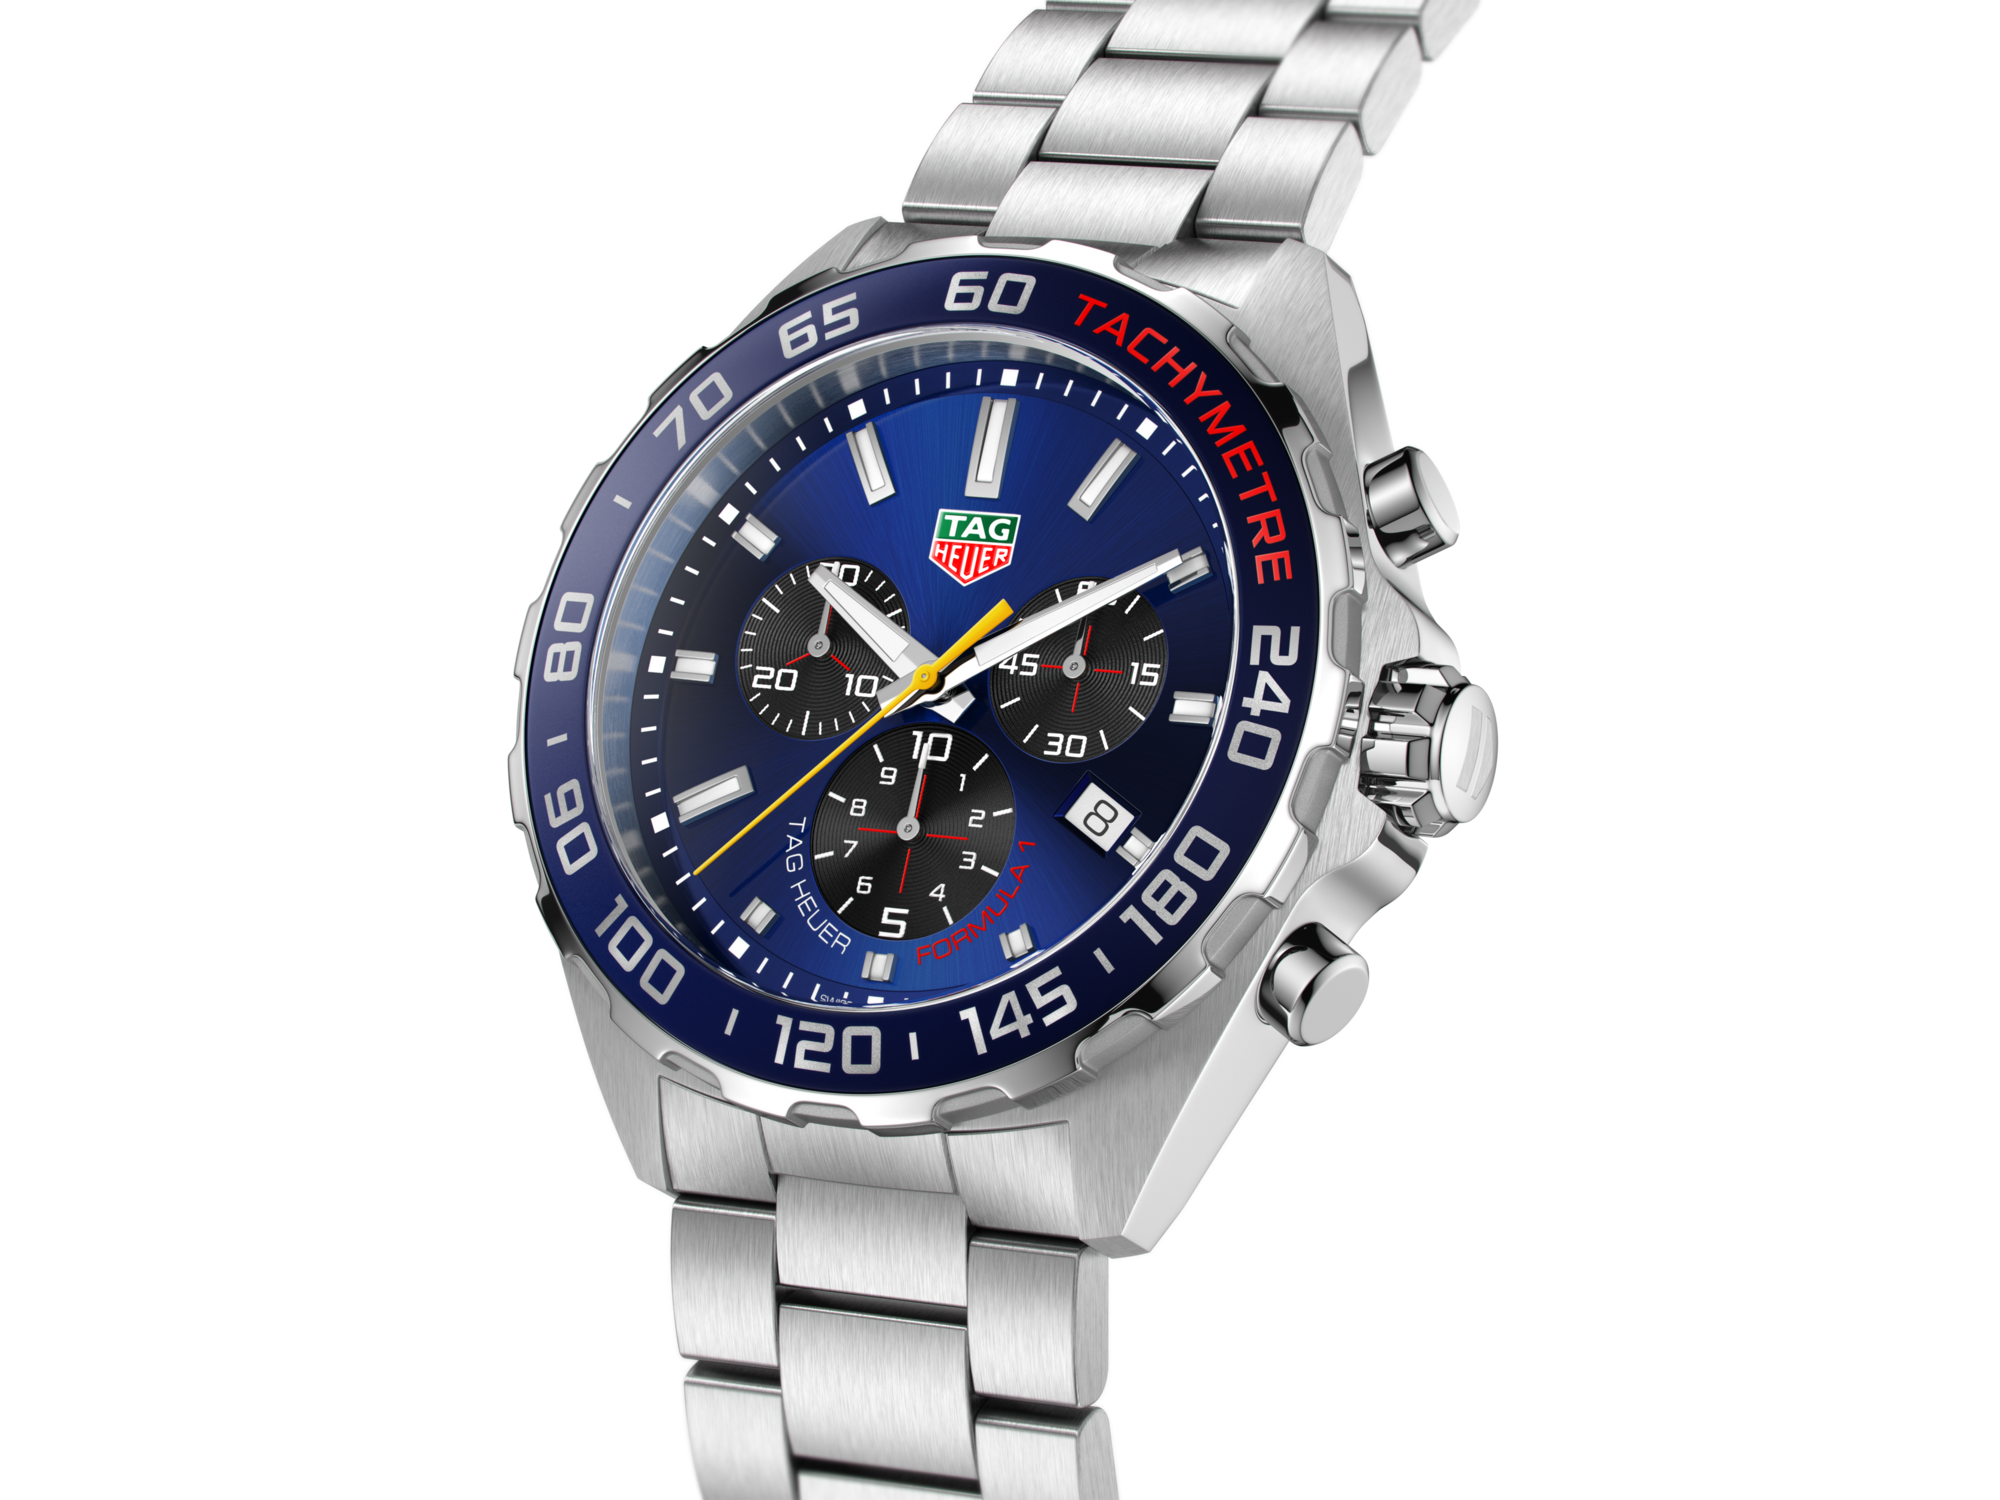 Tag Heuer Aston Martin Red Bull Watch Shop Clothing Shoes Online